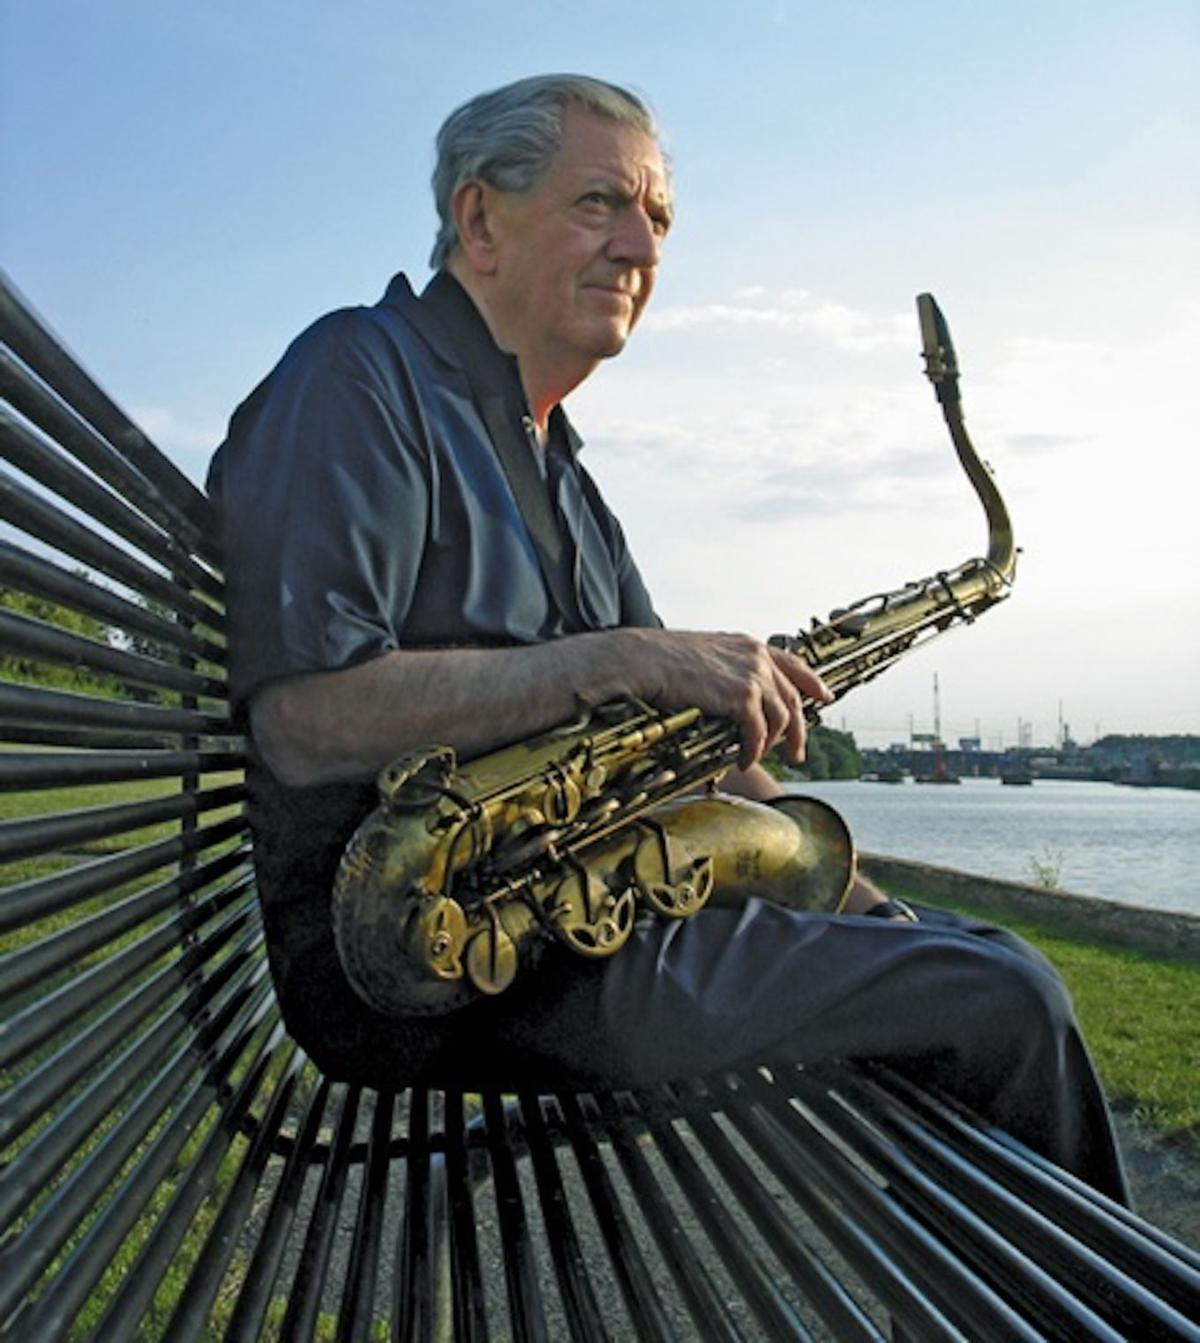 'A Tale of Two Horns in Two Cities,' saxophone virtuosos to play the Jazz Festival